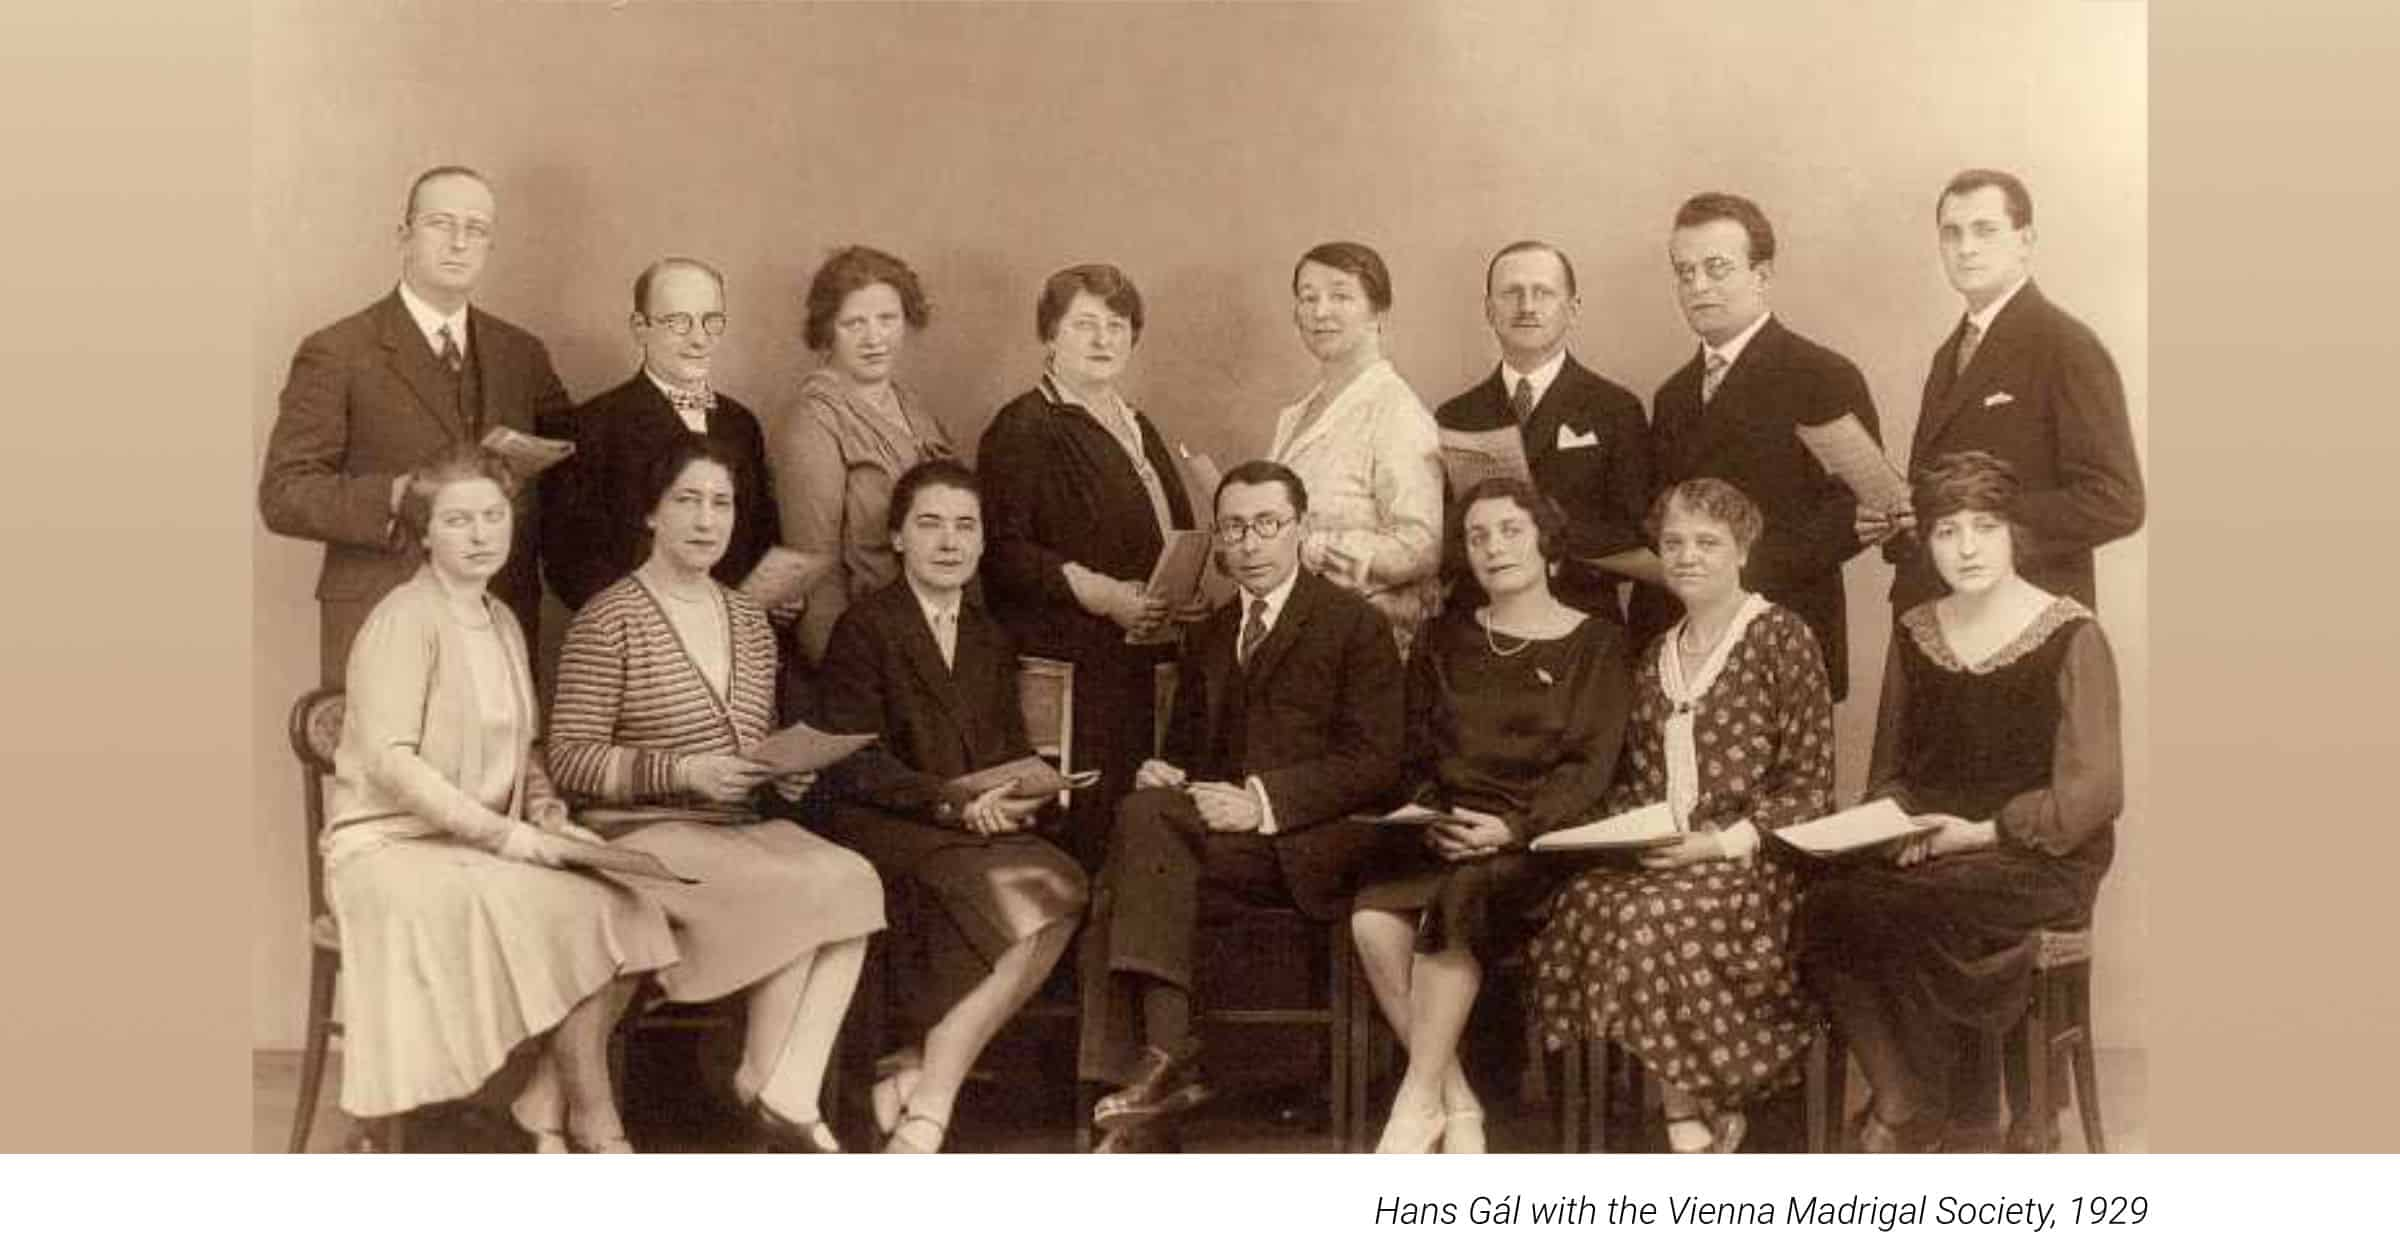 Hans Gál with the Vienna Madrigal Society, 1929